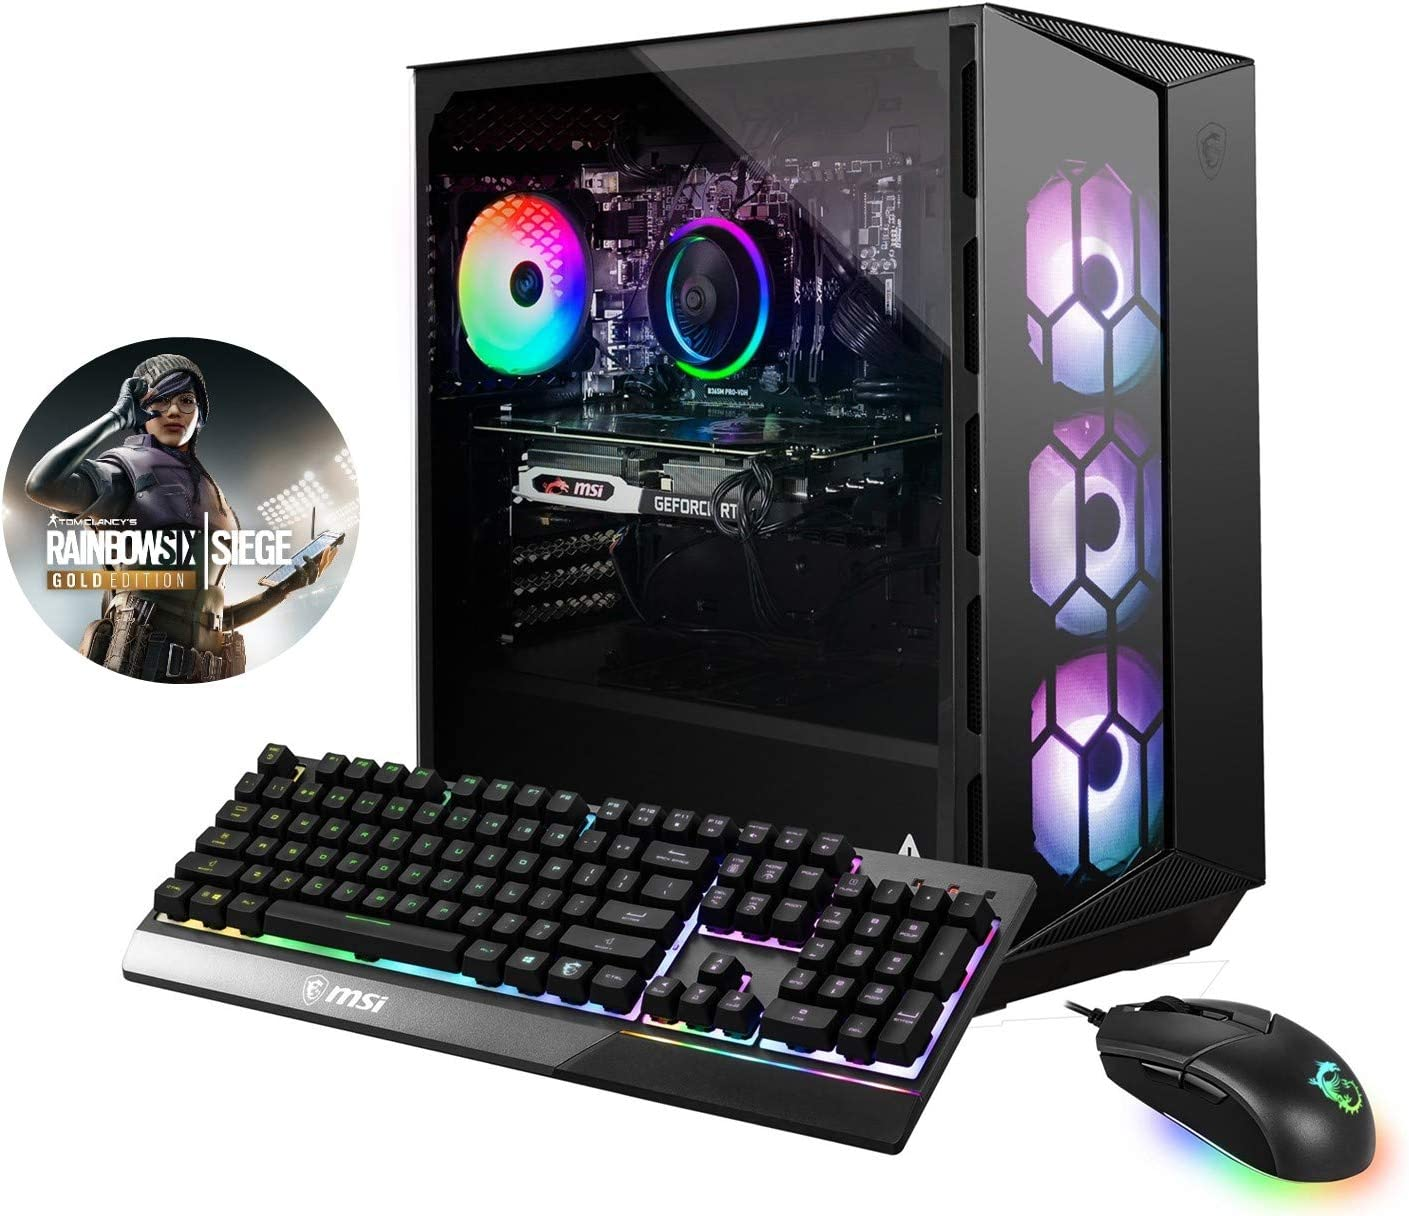 MSI Aegis RS 10SE-013US (i7-10700KF, 16GB RAM, 1TB NVMe SSD, RTX 2080 8GB, Windows 10) Gaming Desktop